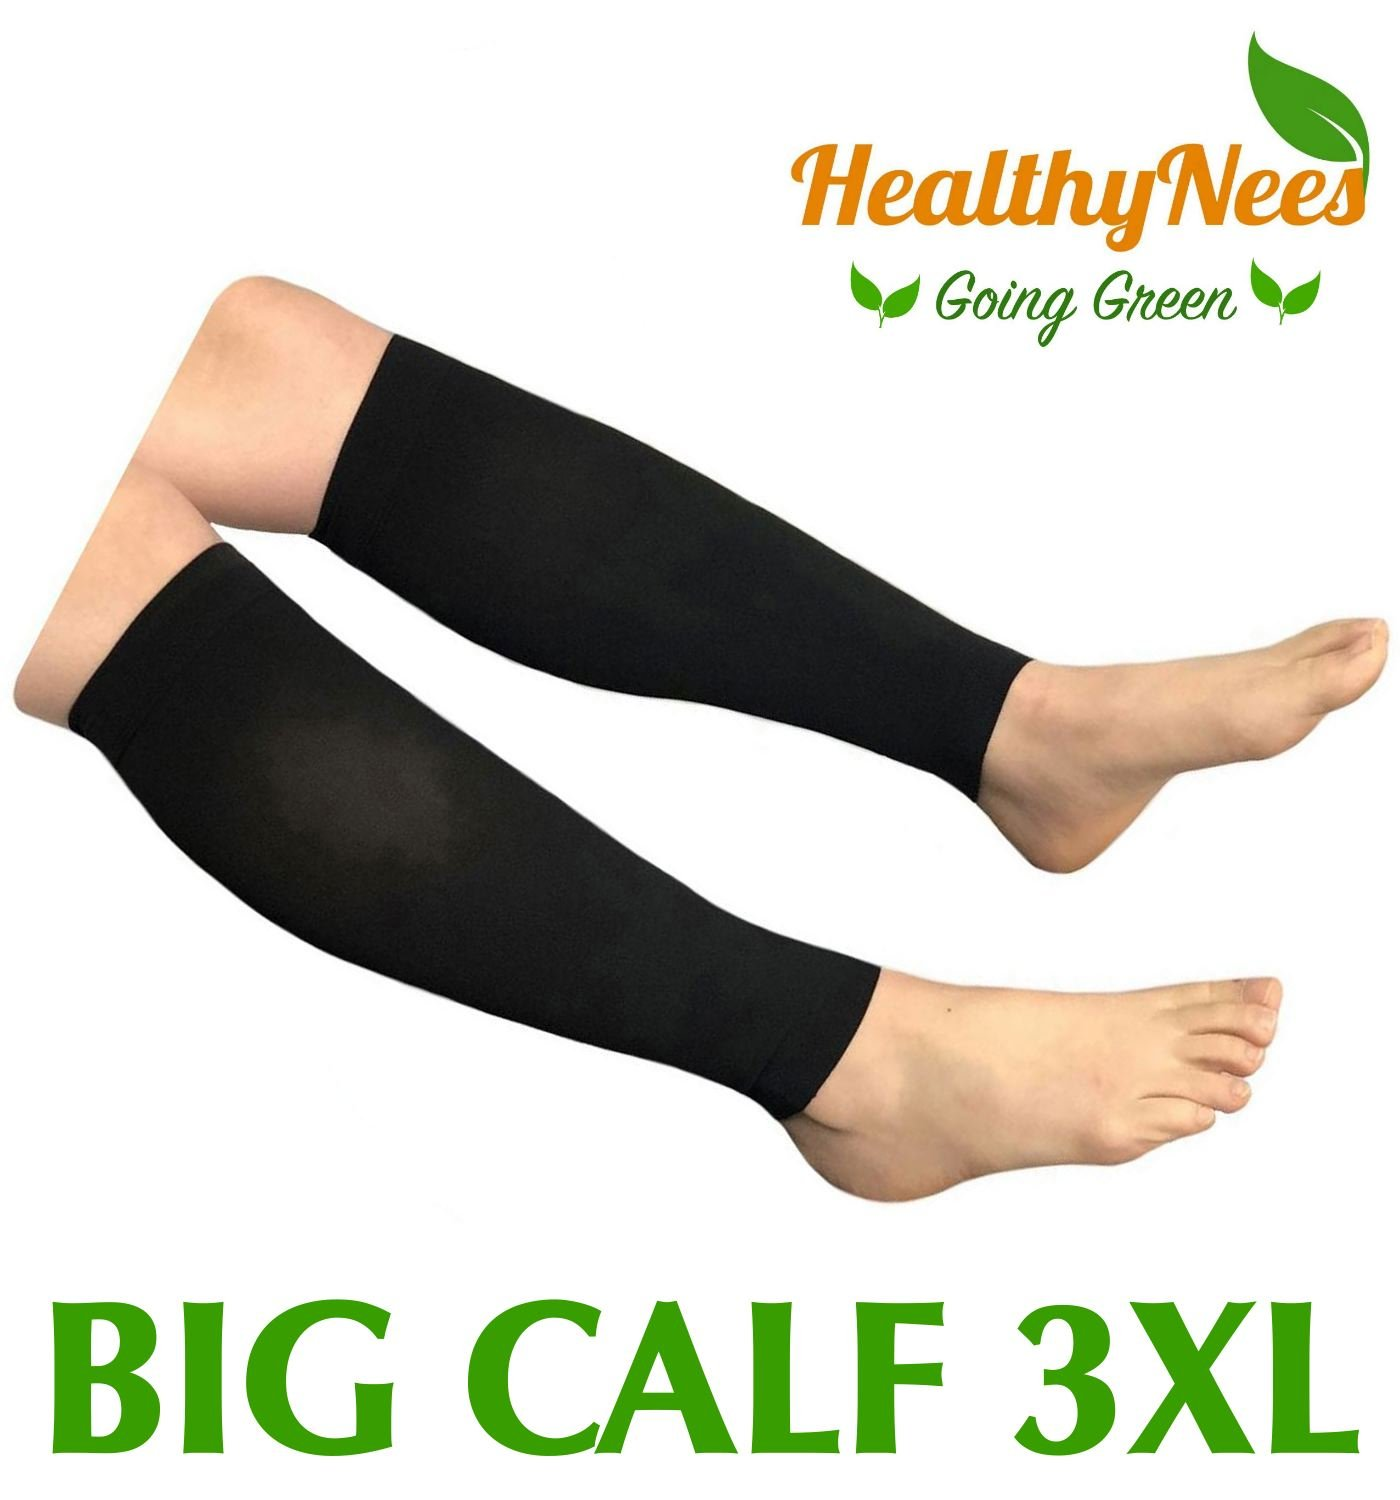 HealthyNees Shin Calf Sleeve 20-30 mmHg Medical Compression Circulation Extra Wide Plus Size Big Tall Leg Thick Calves Firm Support (Black, Big Calf 3XL)